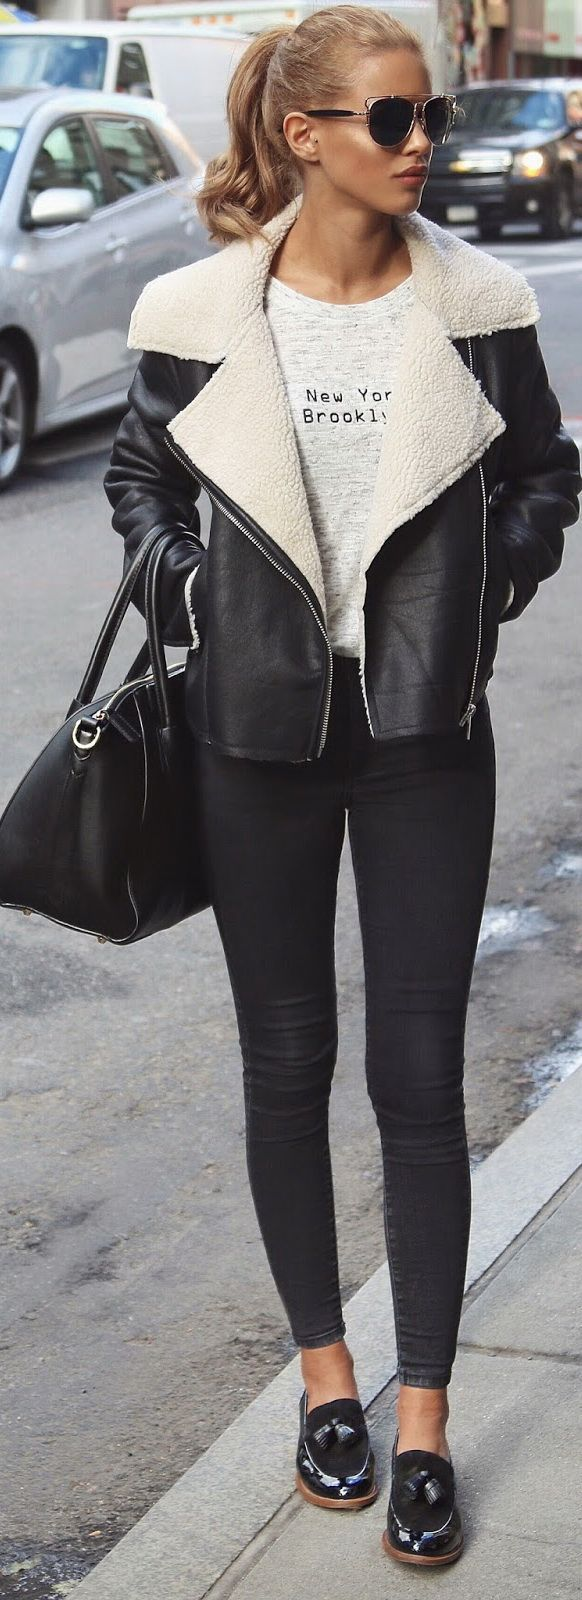 #winter #outfits / All Black - White Tee